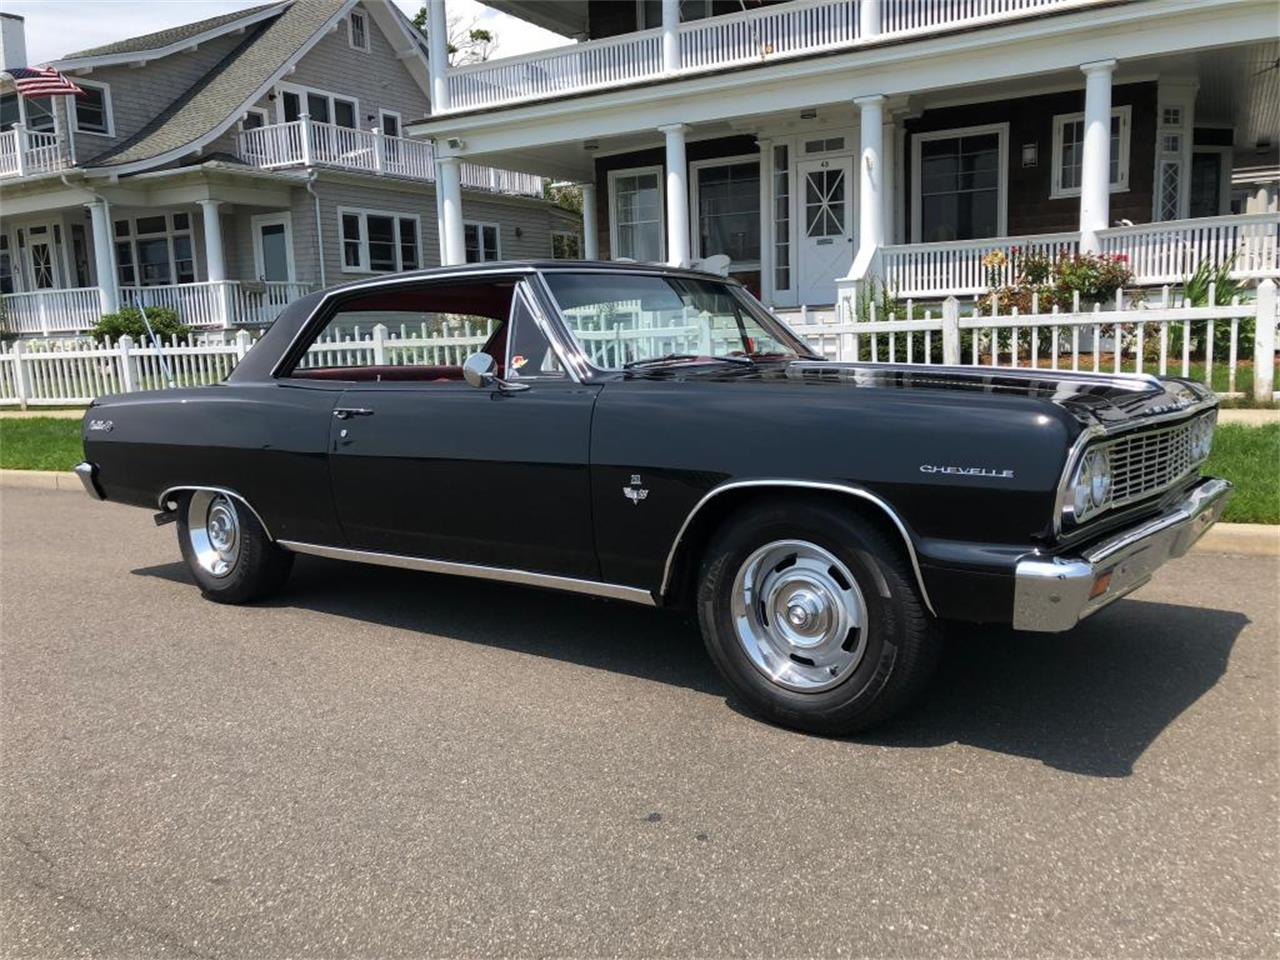 1964 Chevrolet Malibu (CC-1108583) for sale in Milford City, Connecticut